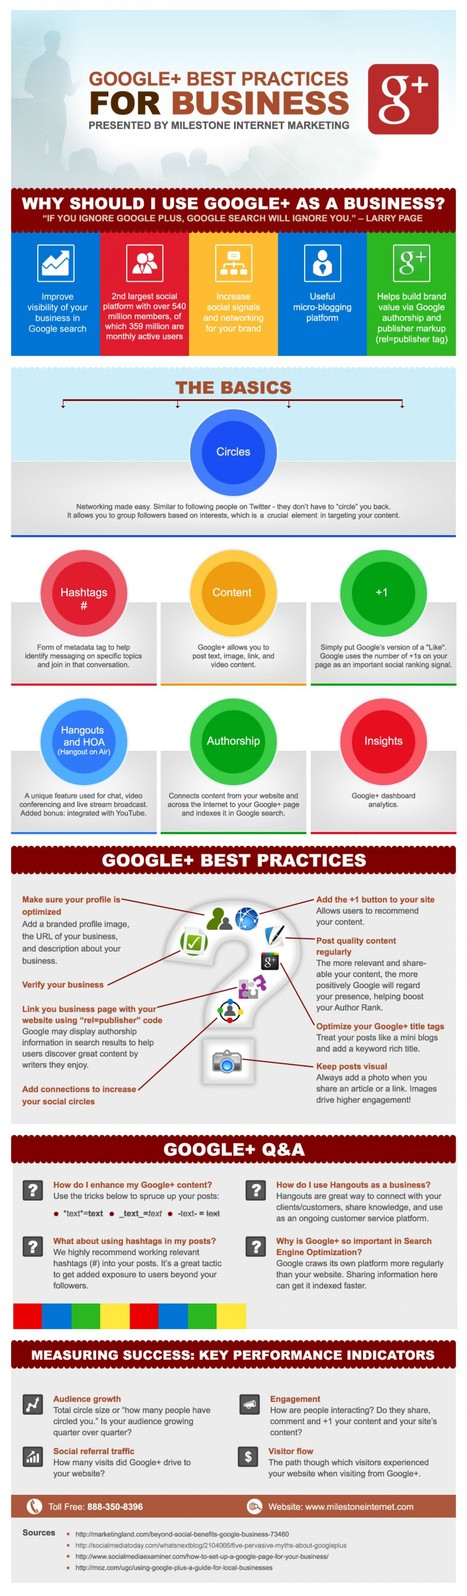 Infographic: How to Use Google+ for Business | JOIN SCOOP.IT AND FOLLOW ME ON SCOOP.IT | Scoop.it